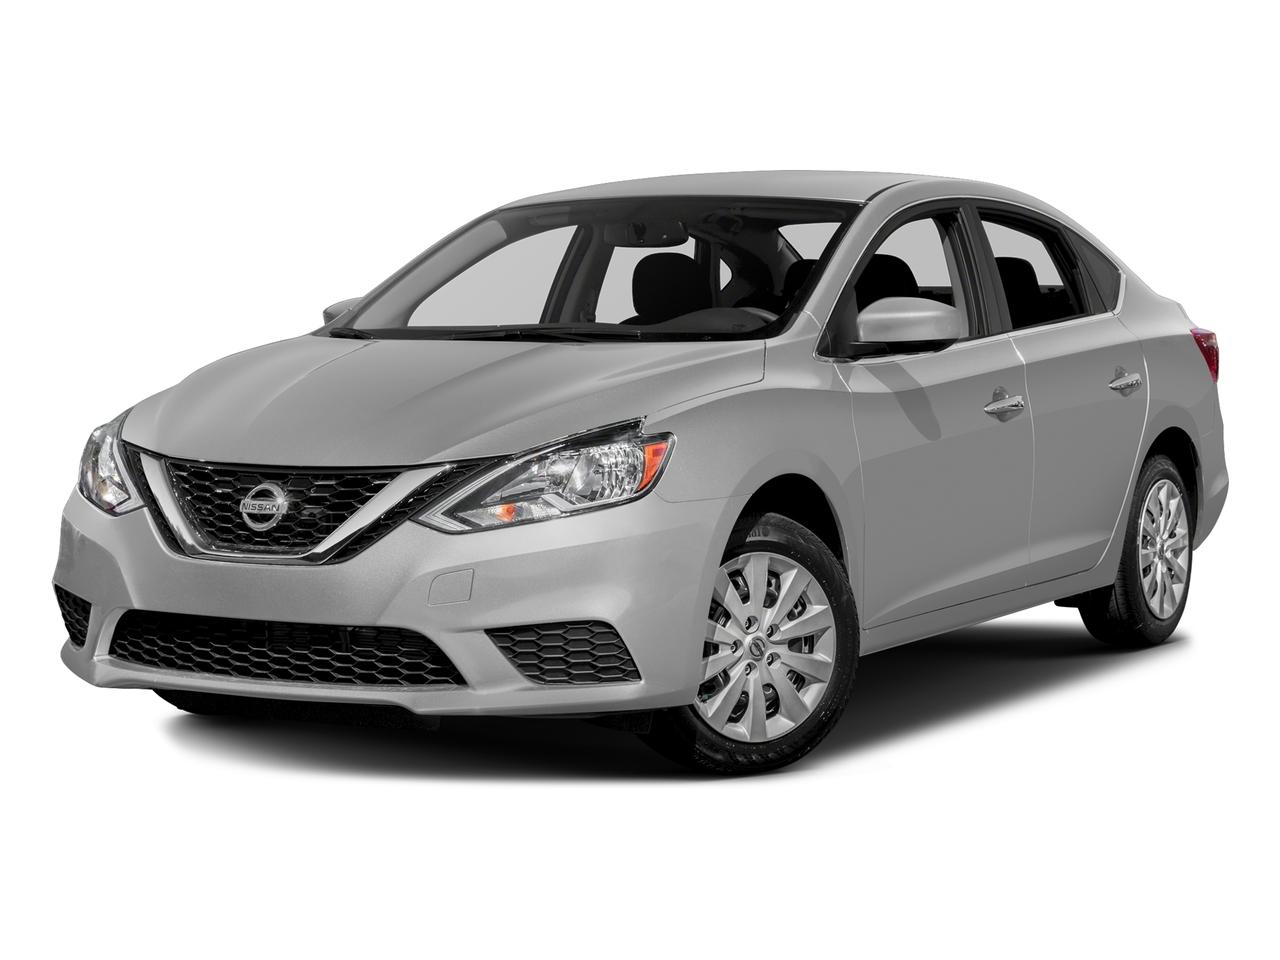 2018 Nissan Sentra Vehicle Photo in Shreveport, LA 71105